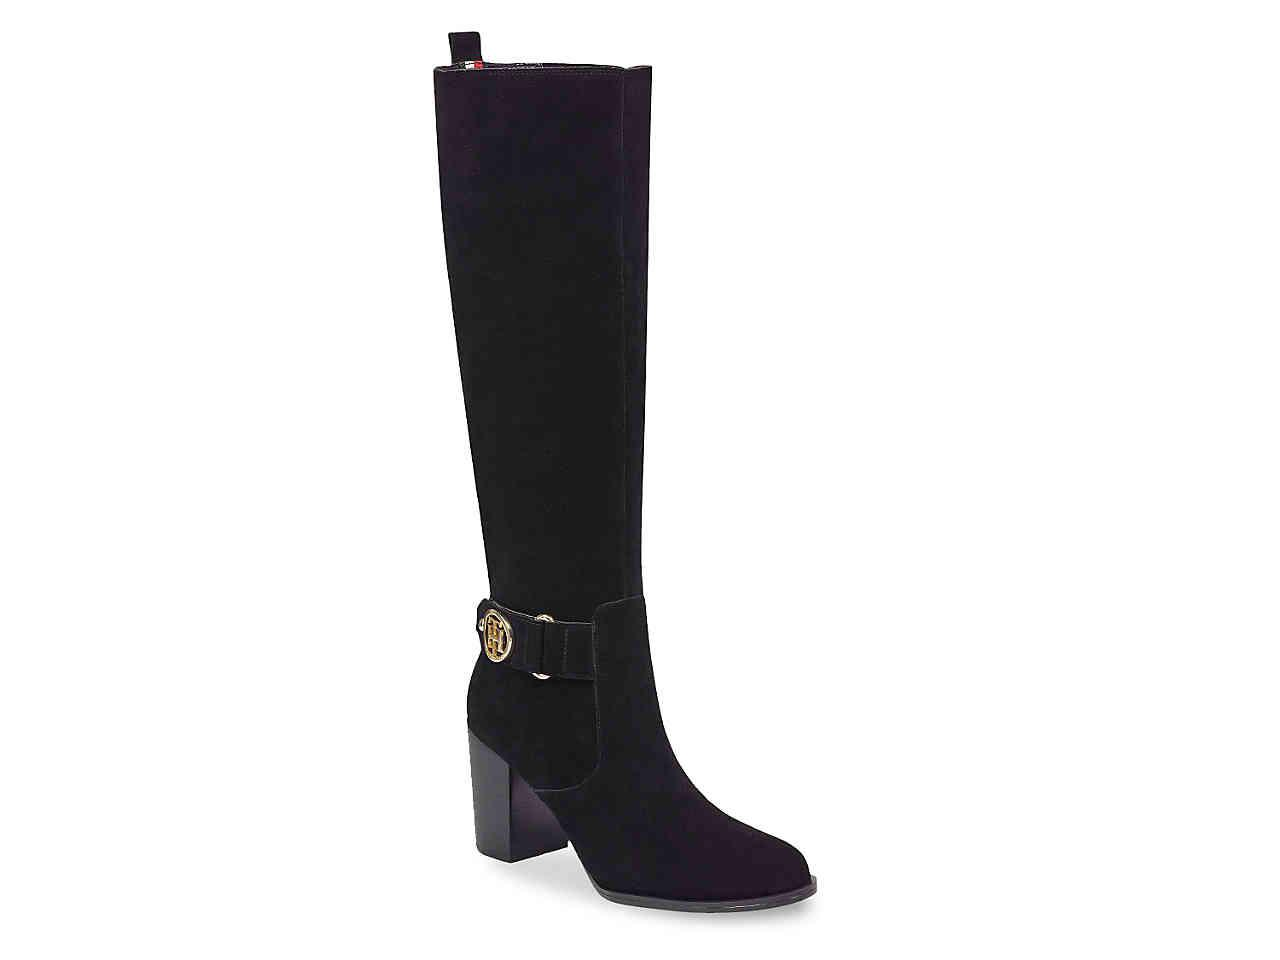 12b5e8c0b71 Lyst - Tommy Hilfiger Deeanne Boot in Black